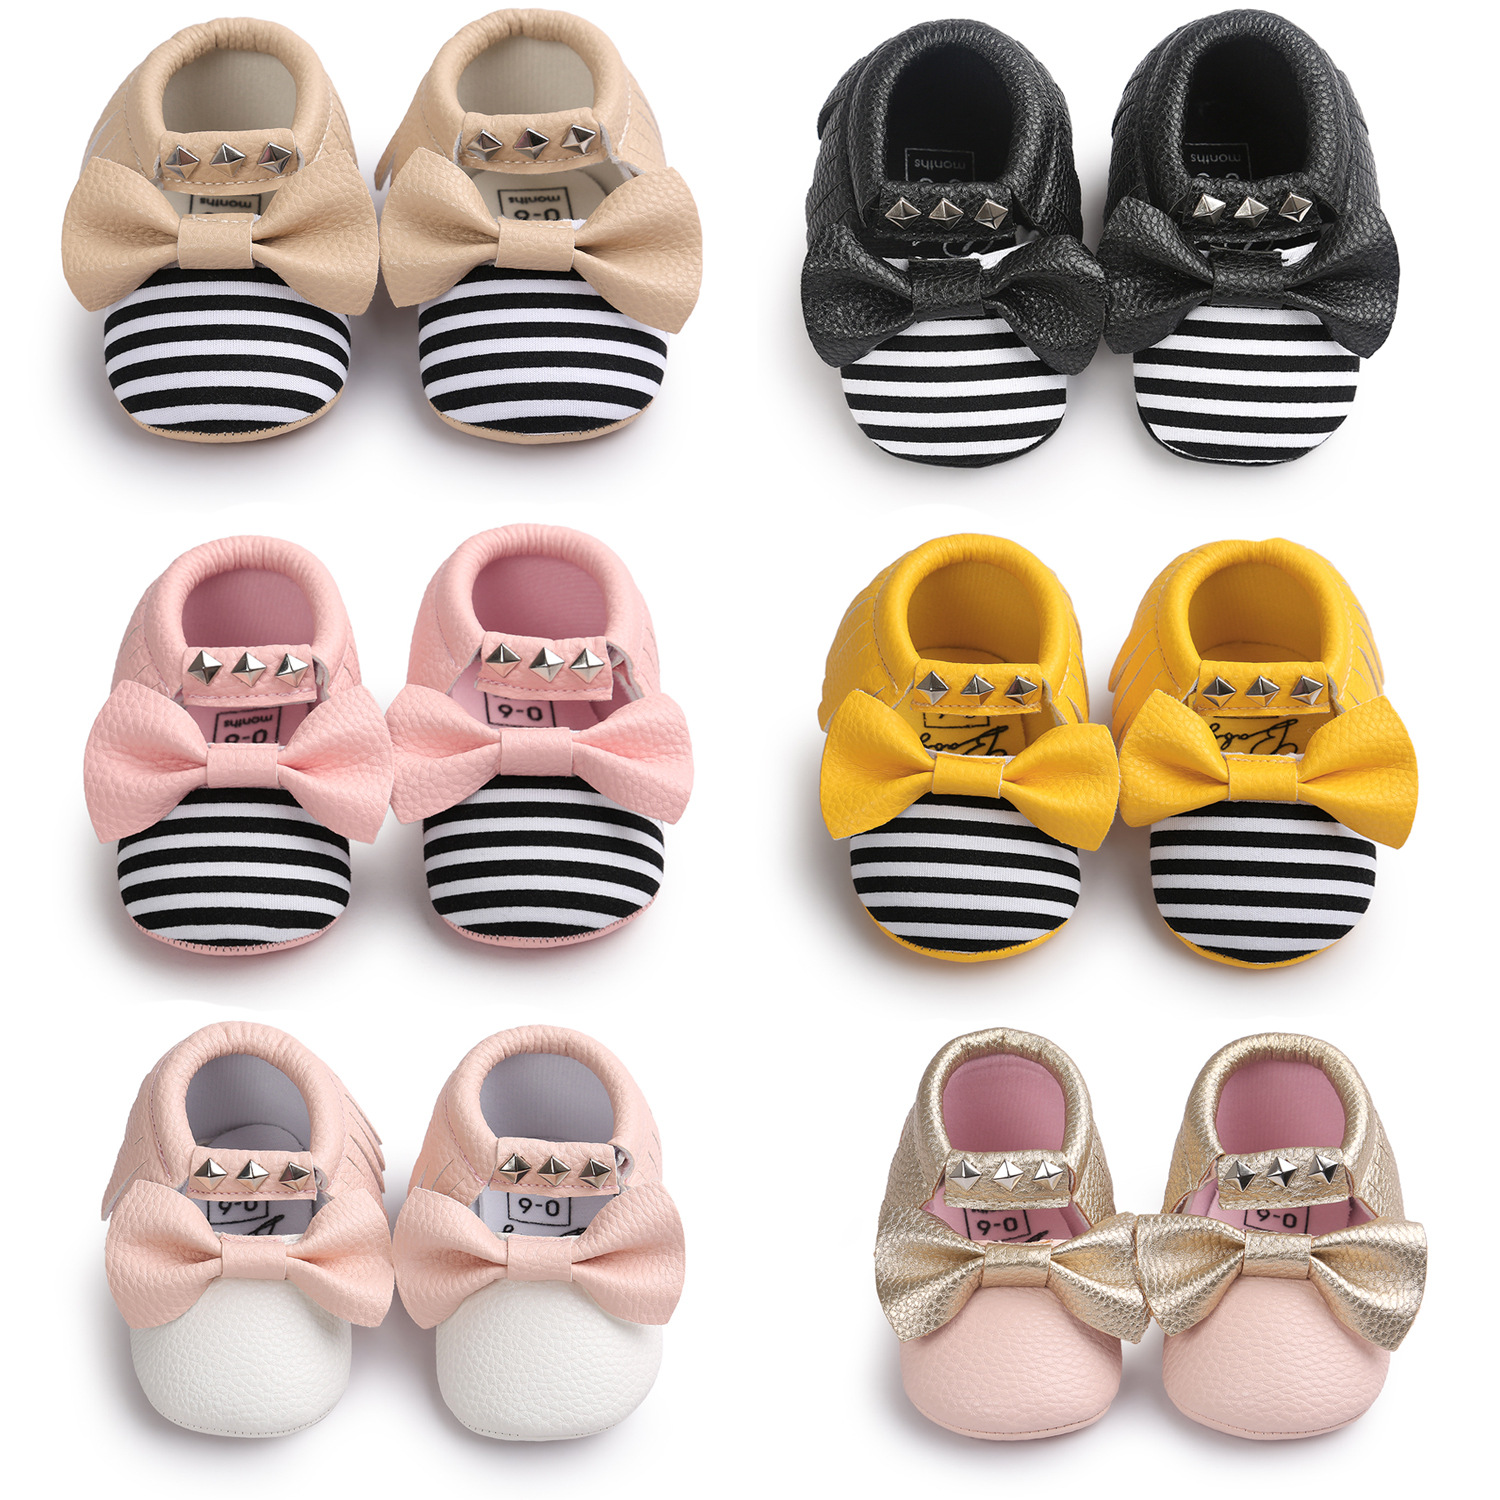 New Spring Rivets Baby Kids Leather Shoes Bow Boy Girl Baby Moccs Toddler Shoes PU Infant Shoes First Walkers